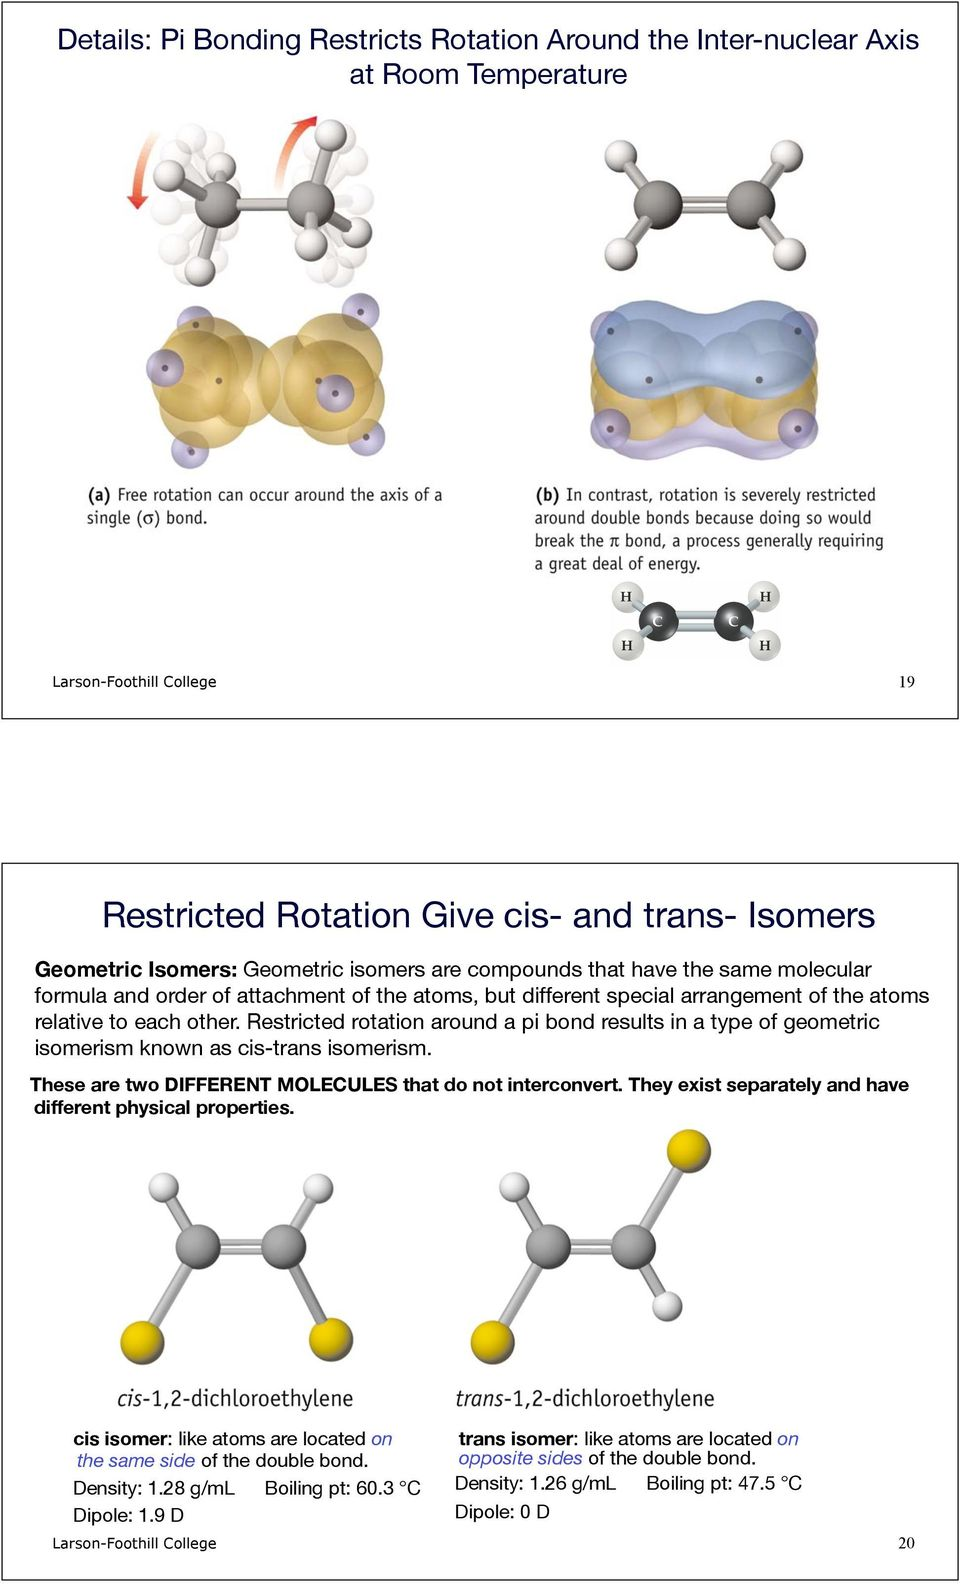 Restricted rotation around a pi bond results in a type of geometric isomerism known as cis-trans isomerism. These are two DIFFERENT MOLECULES that do not interconvert.